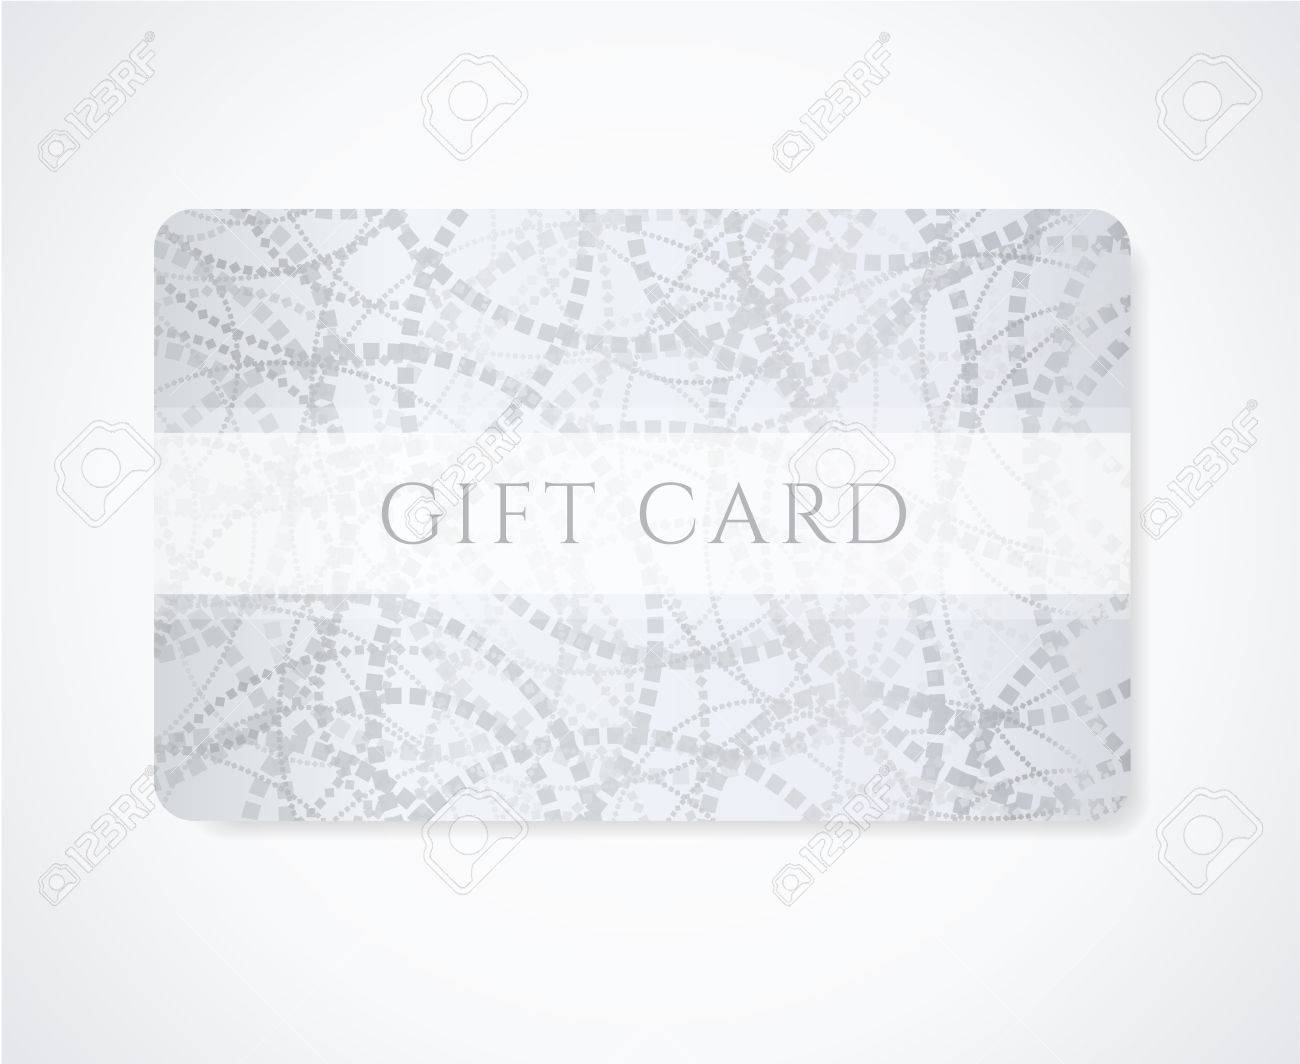 Gift Coupon, Gift Card Discount Card, Business Card With Abstract ...